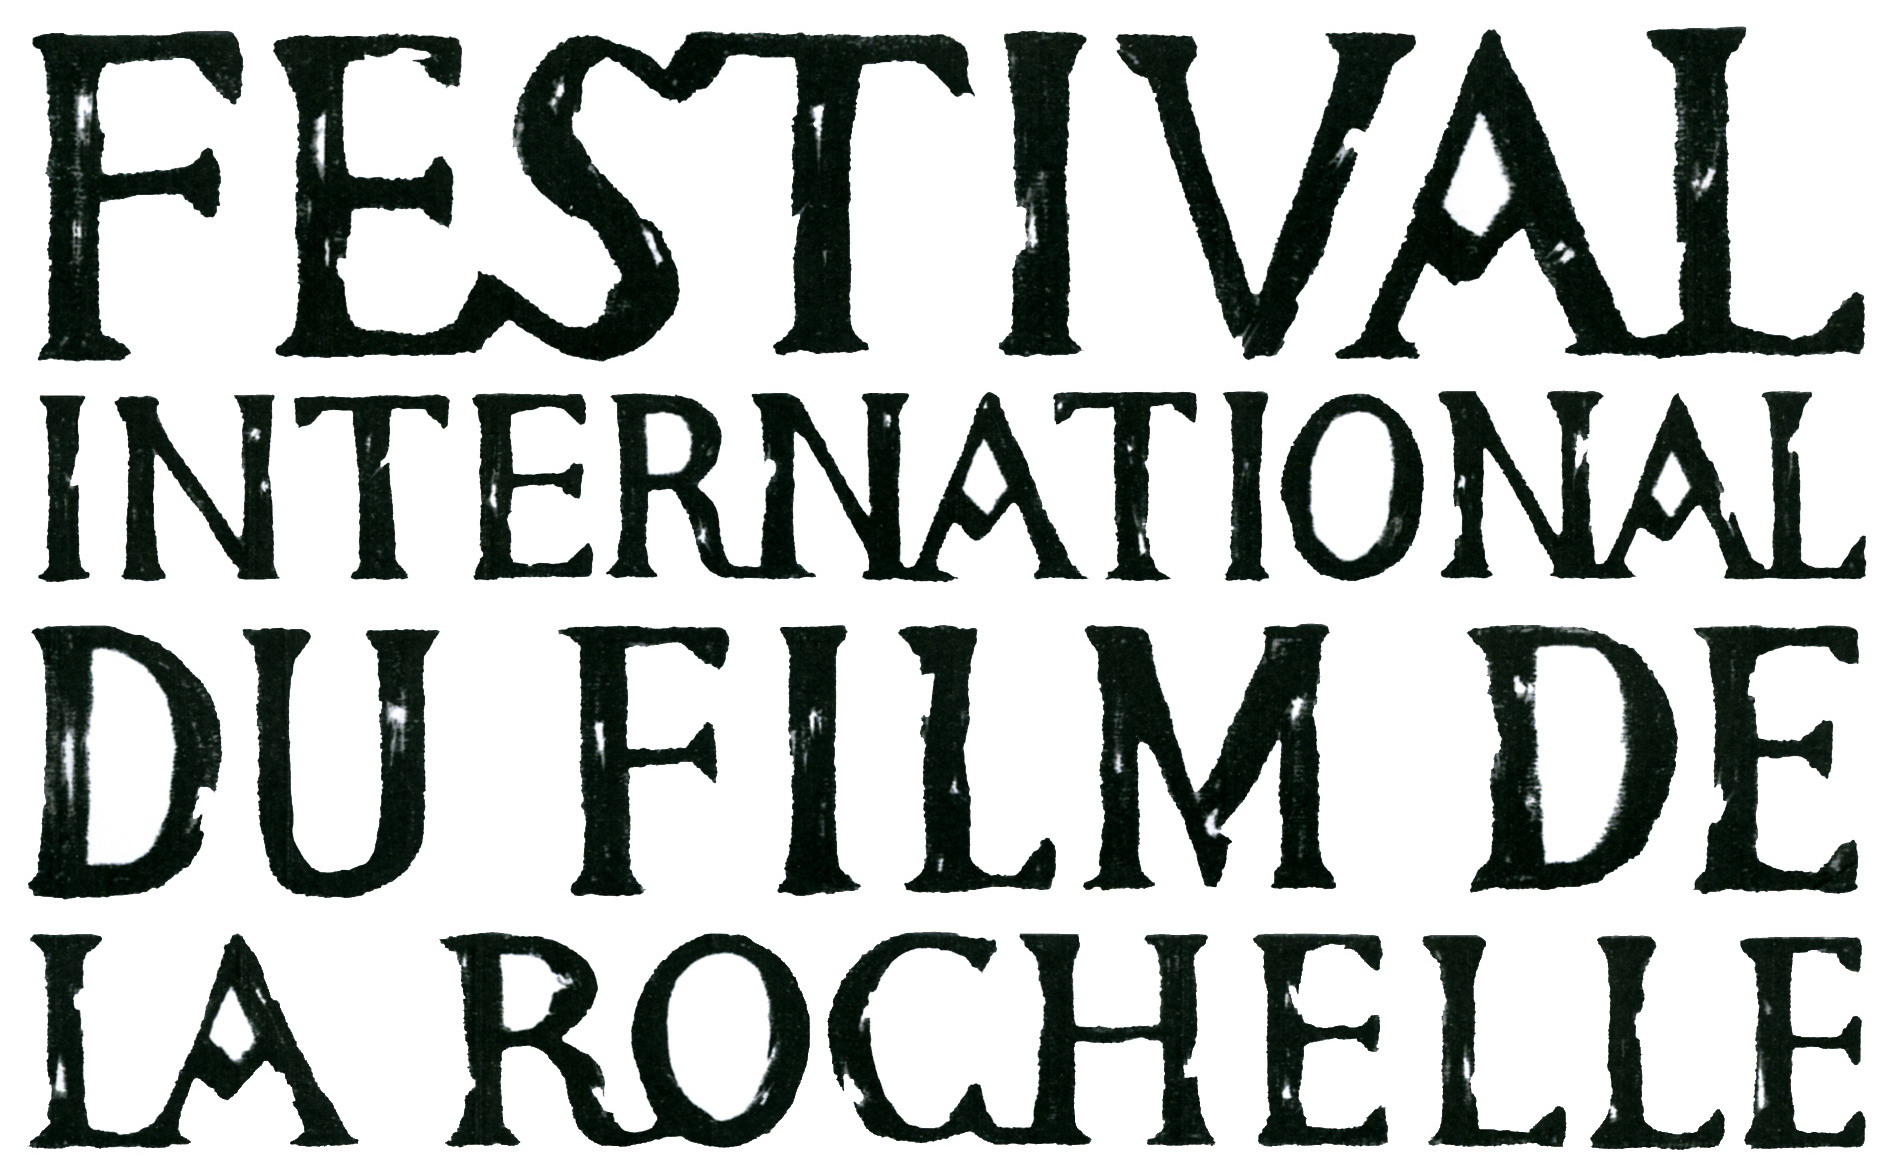 Festival international du film de La Rochelle